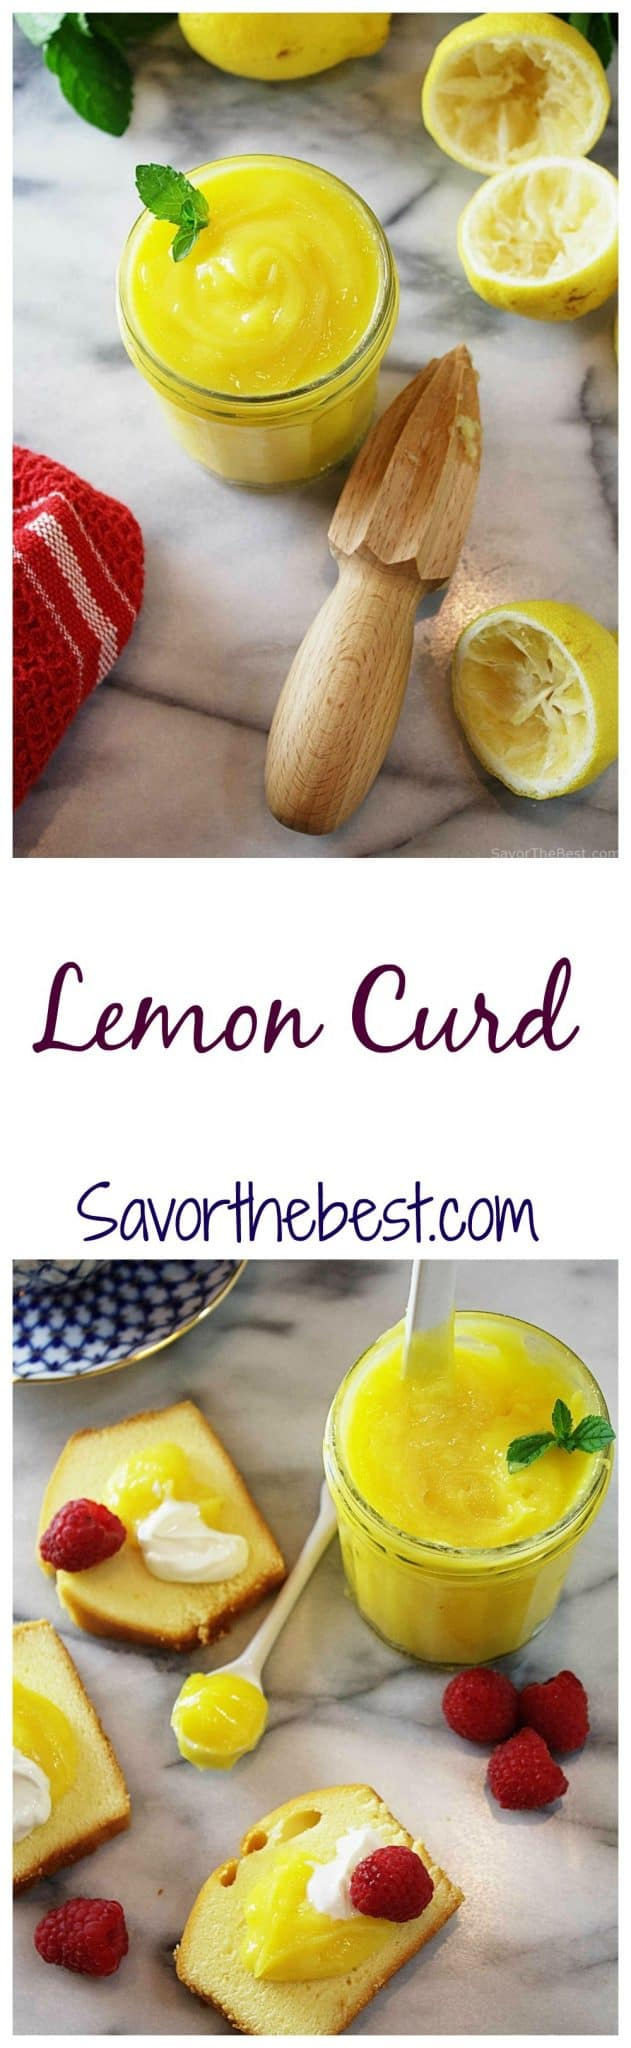 Rich Lemon Curd